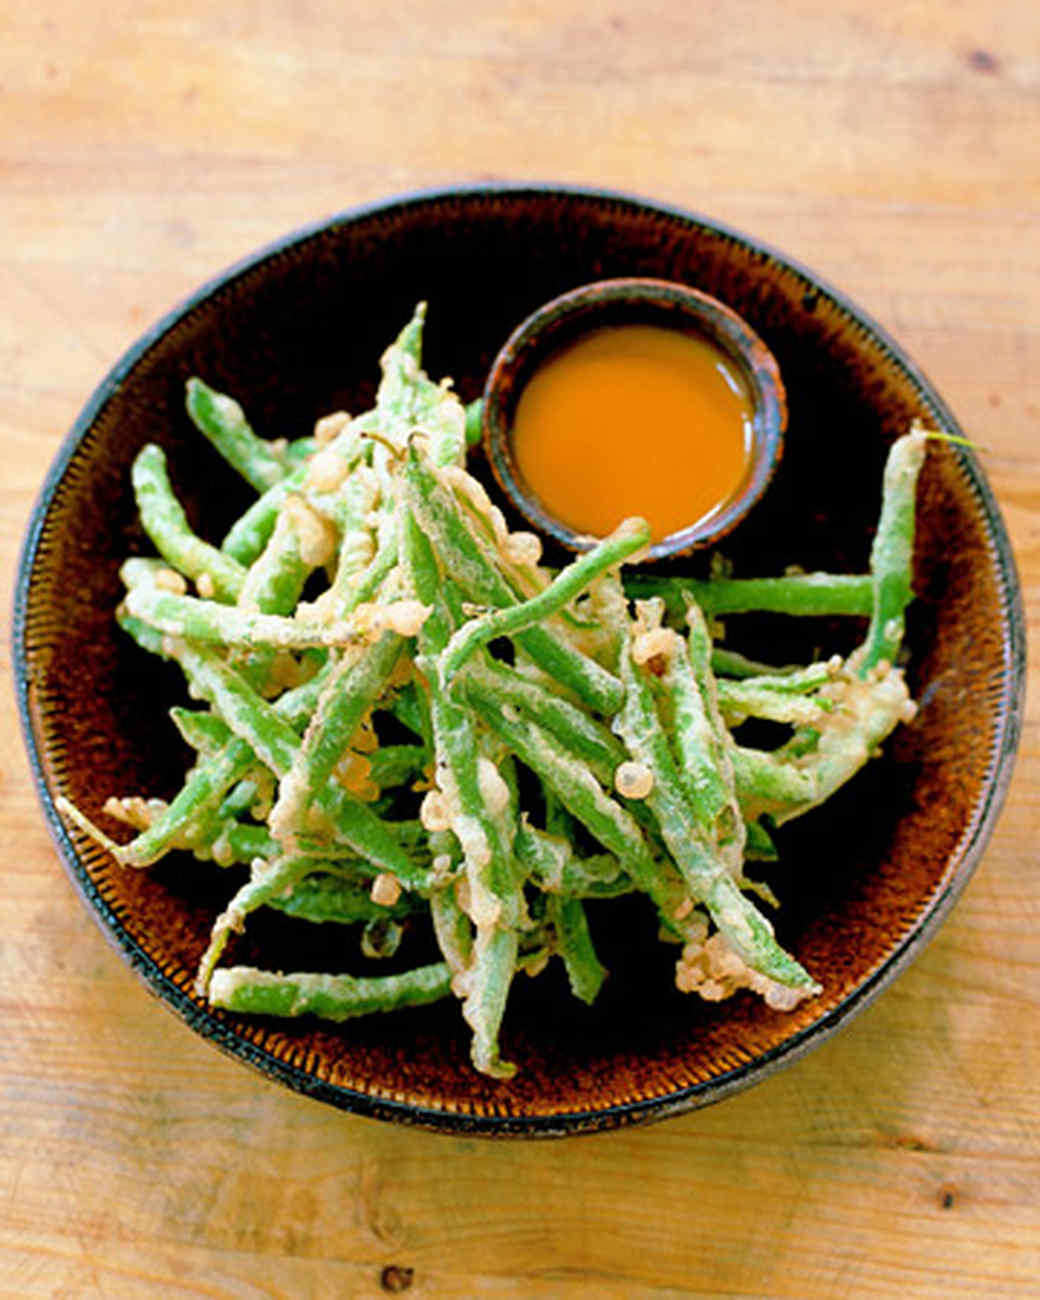 3156_072108_friedgreenbeans.jpg